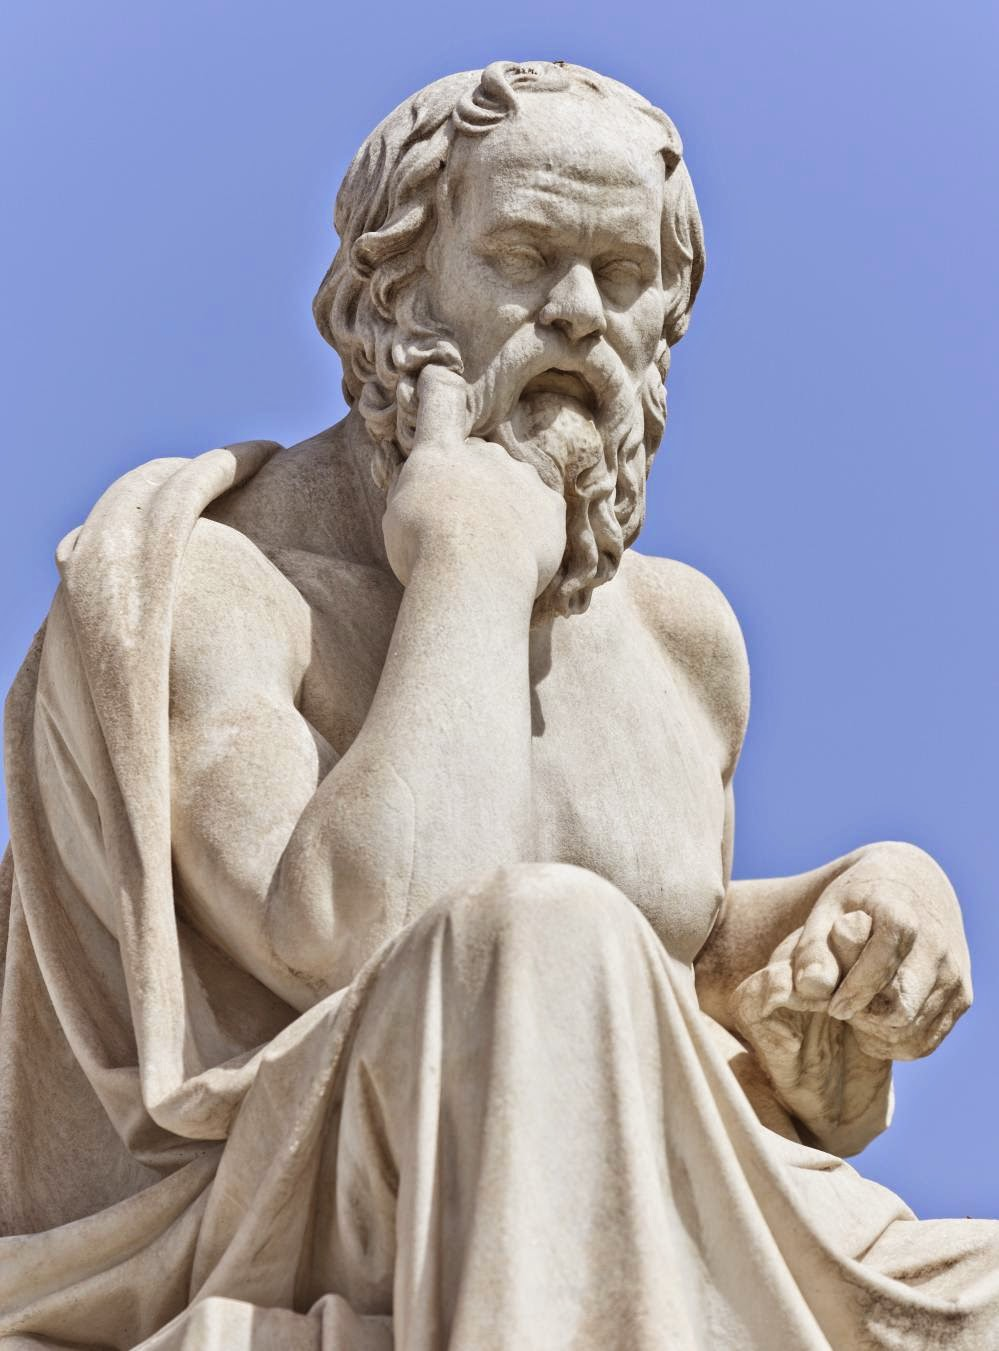 understanding the notion of one true god according to plato Not only does socrates (plato's mouthpiece in the dialogue) posit two differing   it also provides the key to locating and understanding socrates' true vision of  education  after gaining an understanding of the two accounts, the paper will   tales cannot depict fighting among the gods and, further, children.